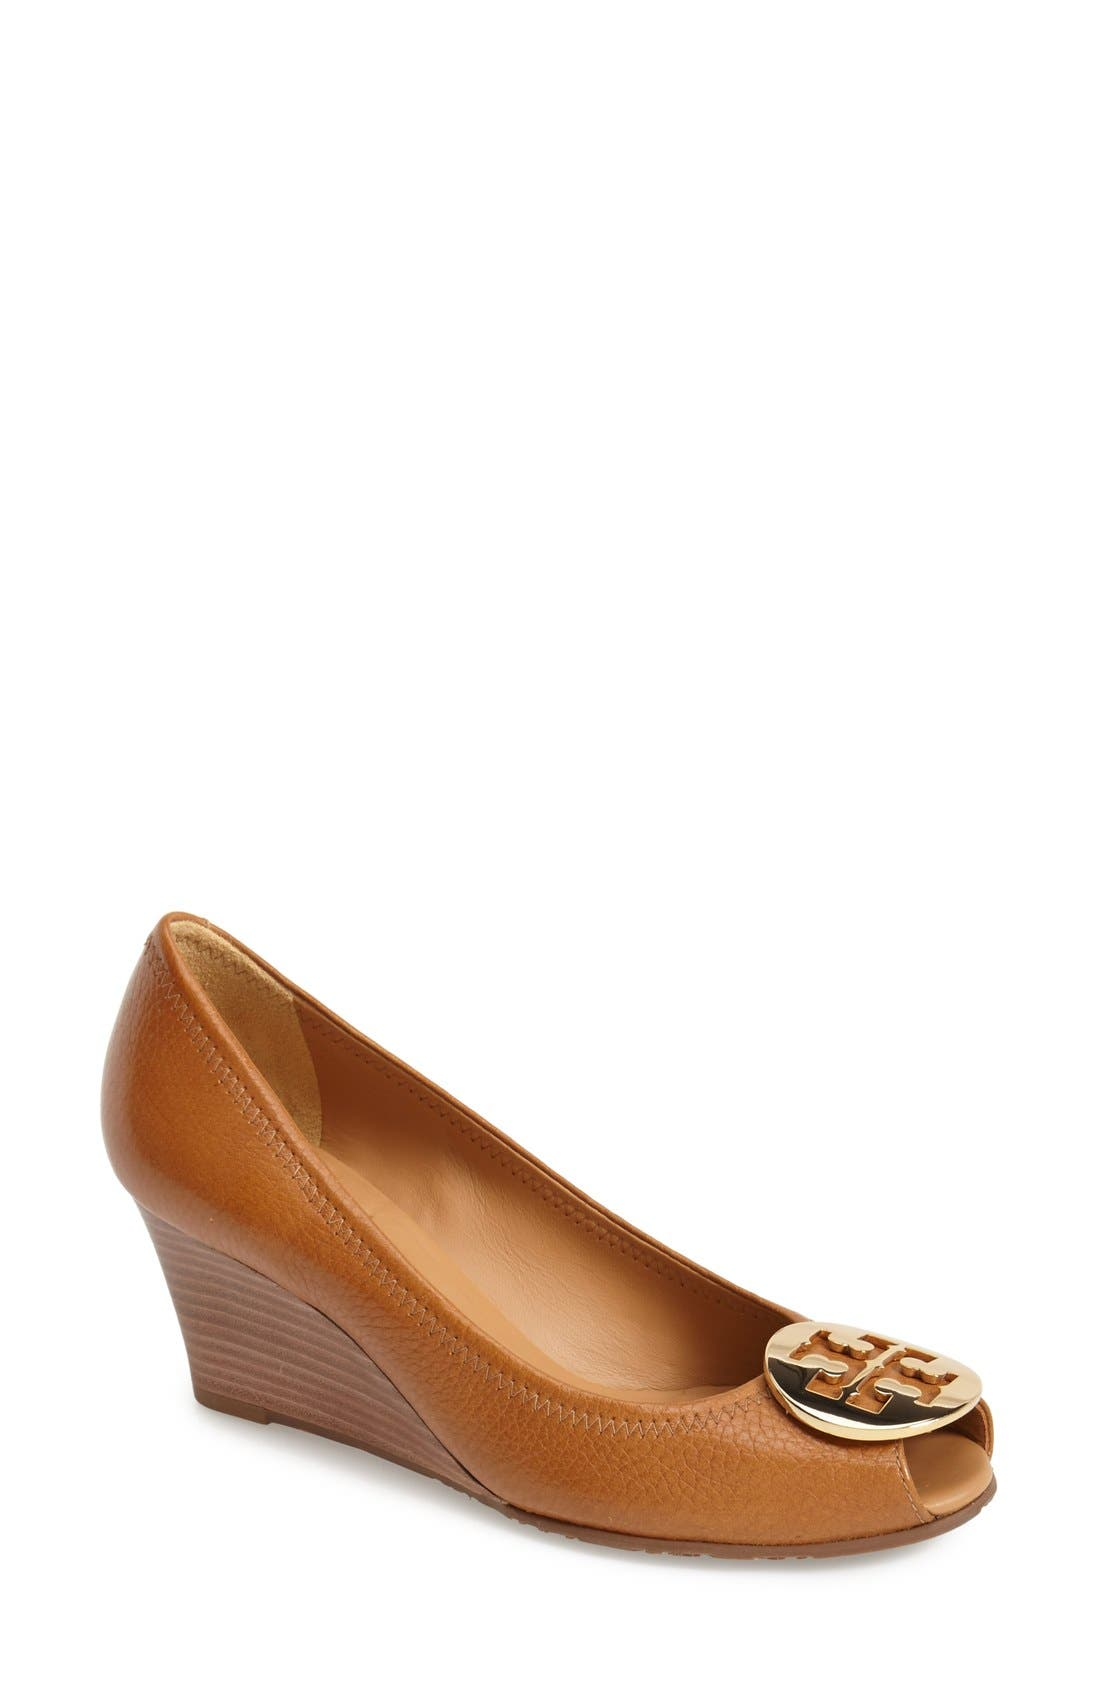 Nordstrom Online & In Store: Shoes, Jewelry, Clothing